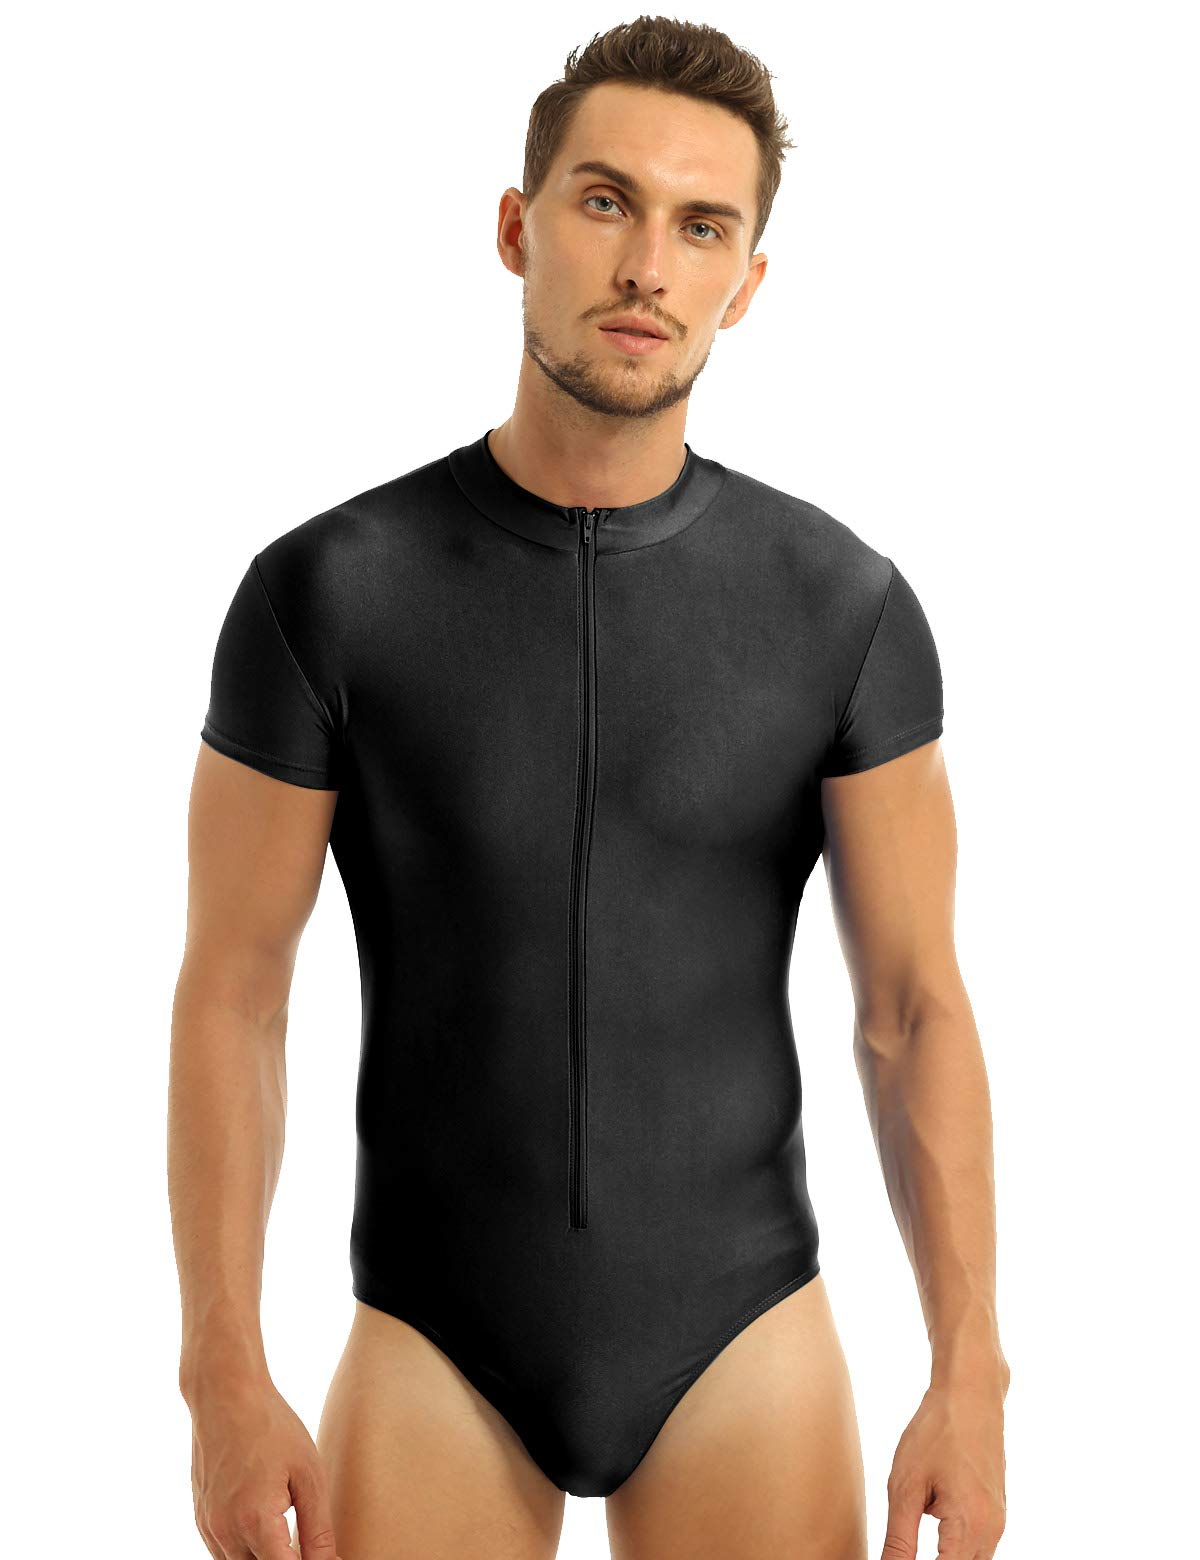 inhzoy Men's Short Sleeve Zipper Front Ballet Dance Leotard One Piece Gymnastics Bodysuit Black Small by inhzoy